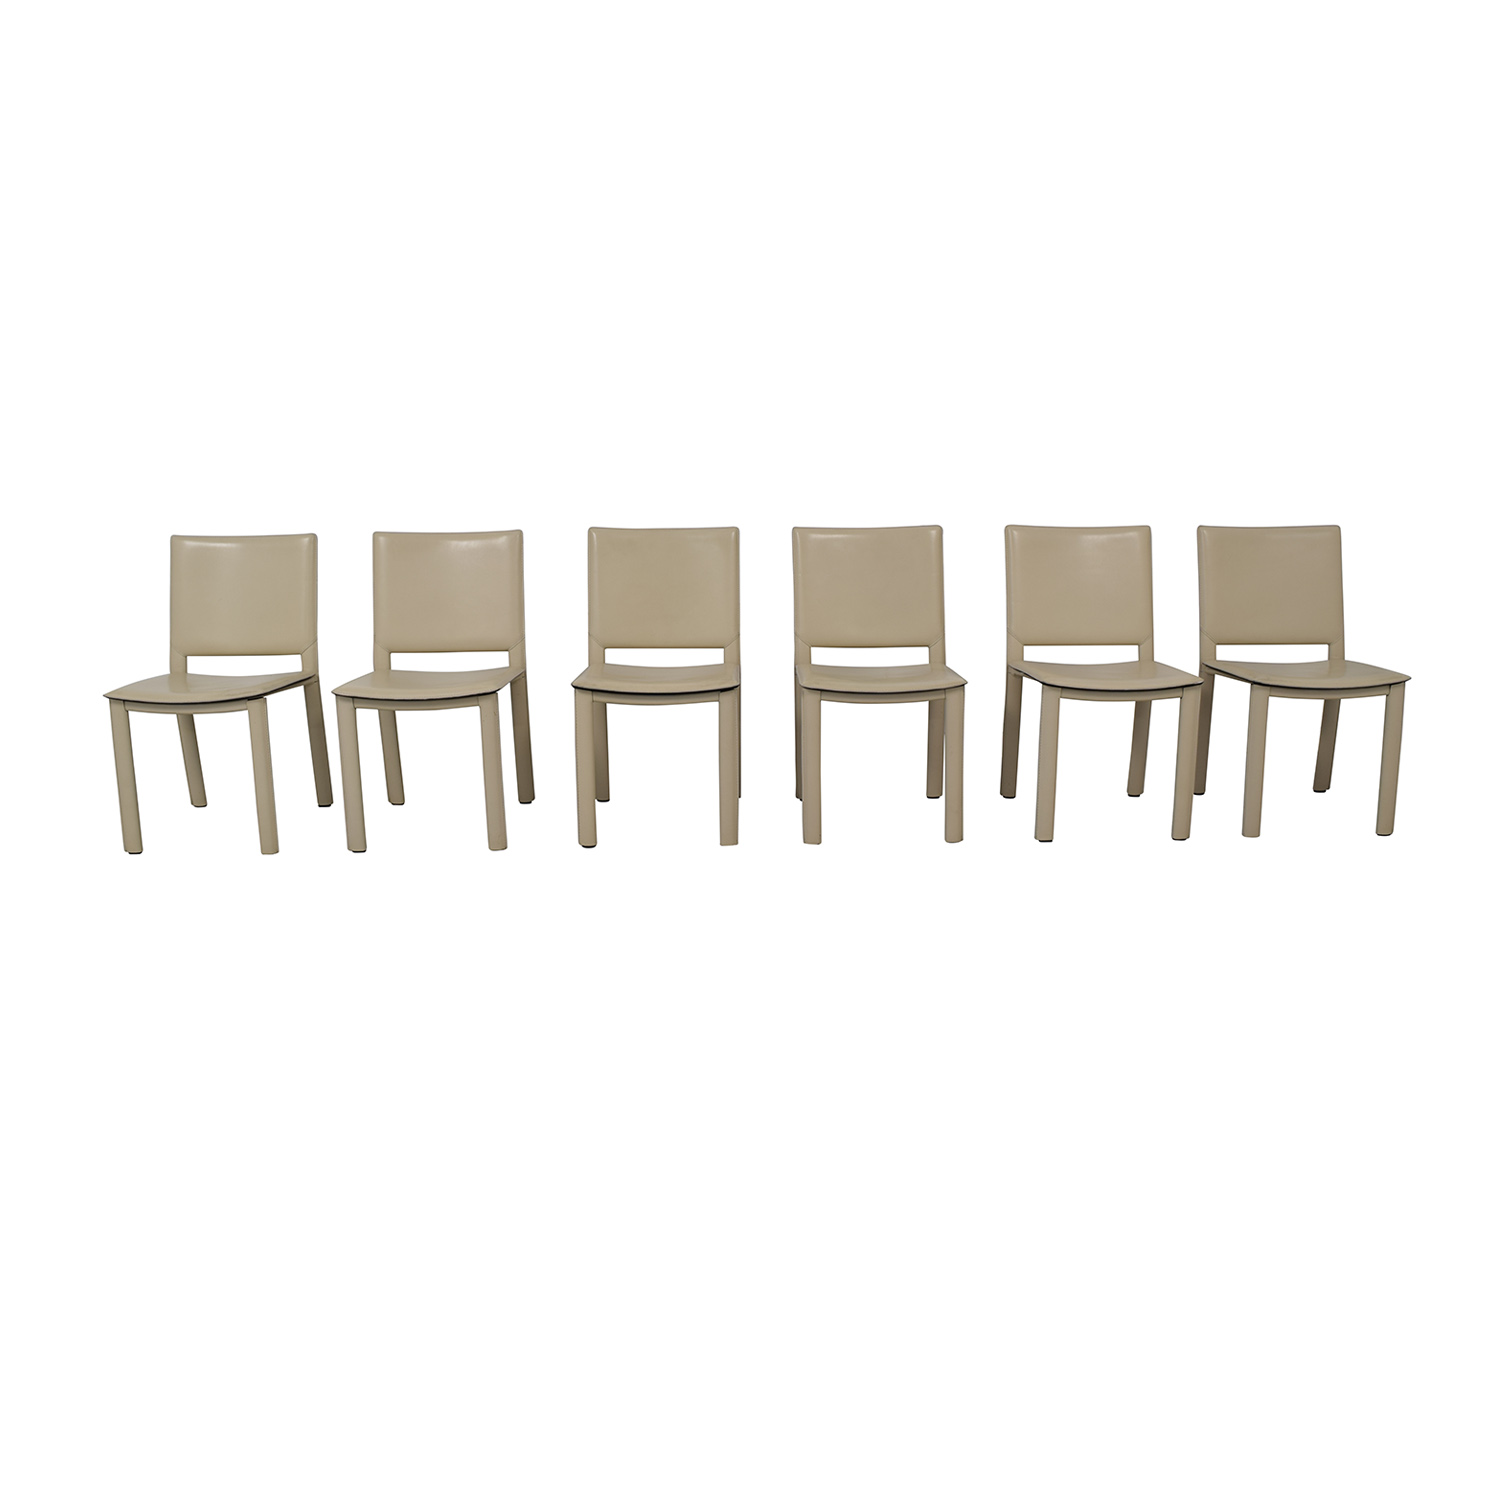 buy Room & Board by Maria Yee Madrid Leather Dining Chairs Room & Board